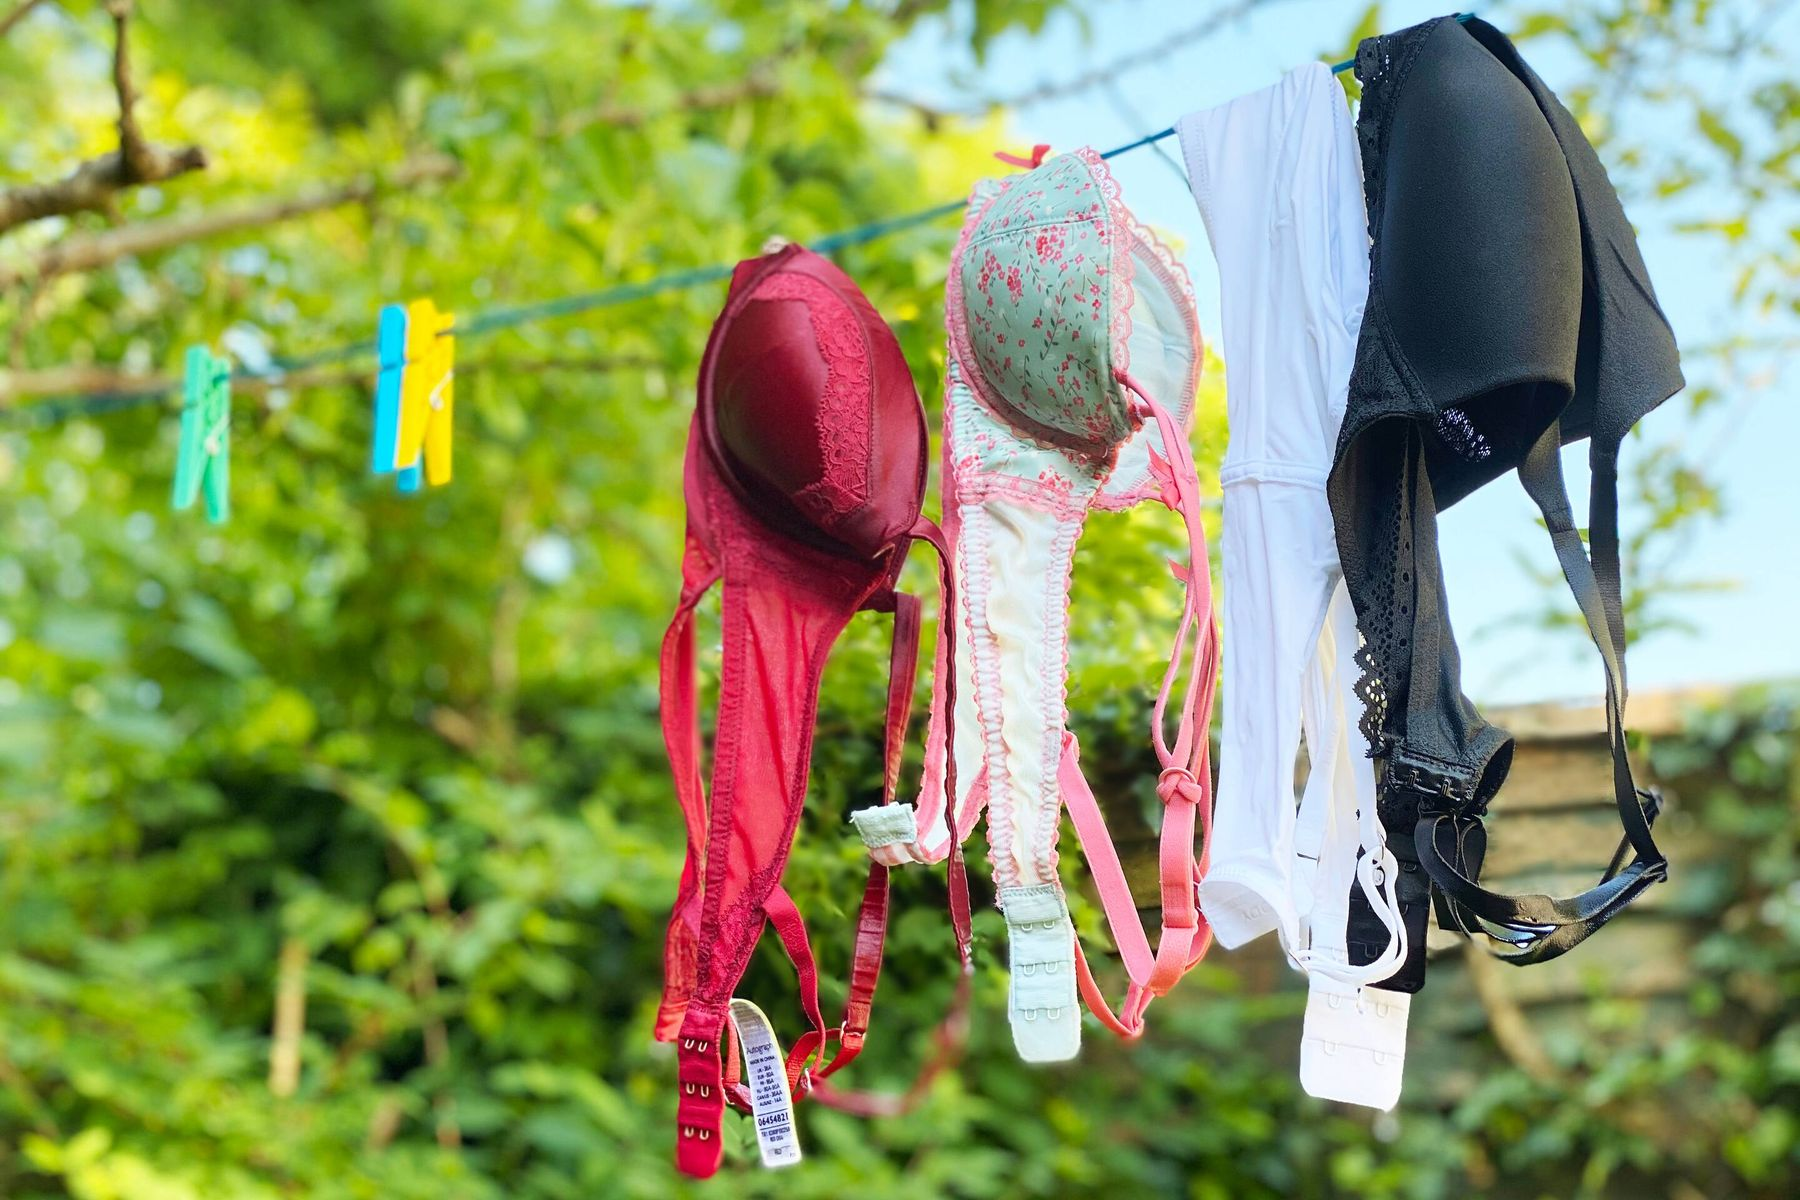 Freshly washed bras hanging to line dry outside.